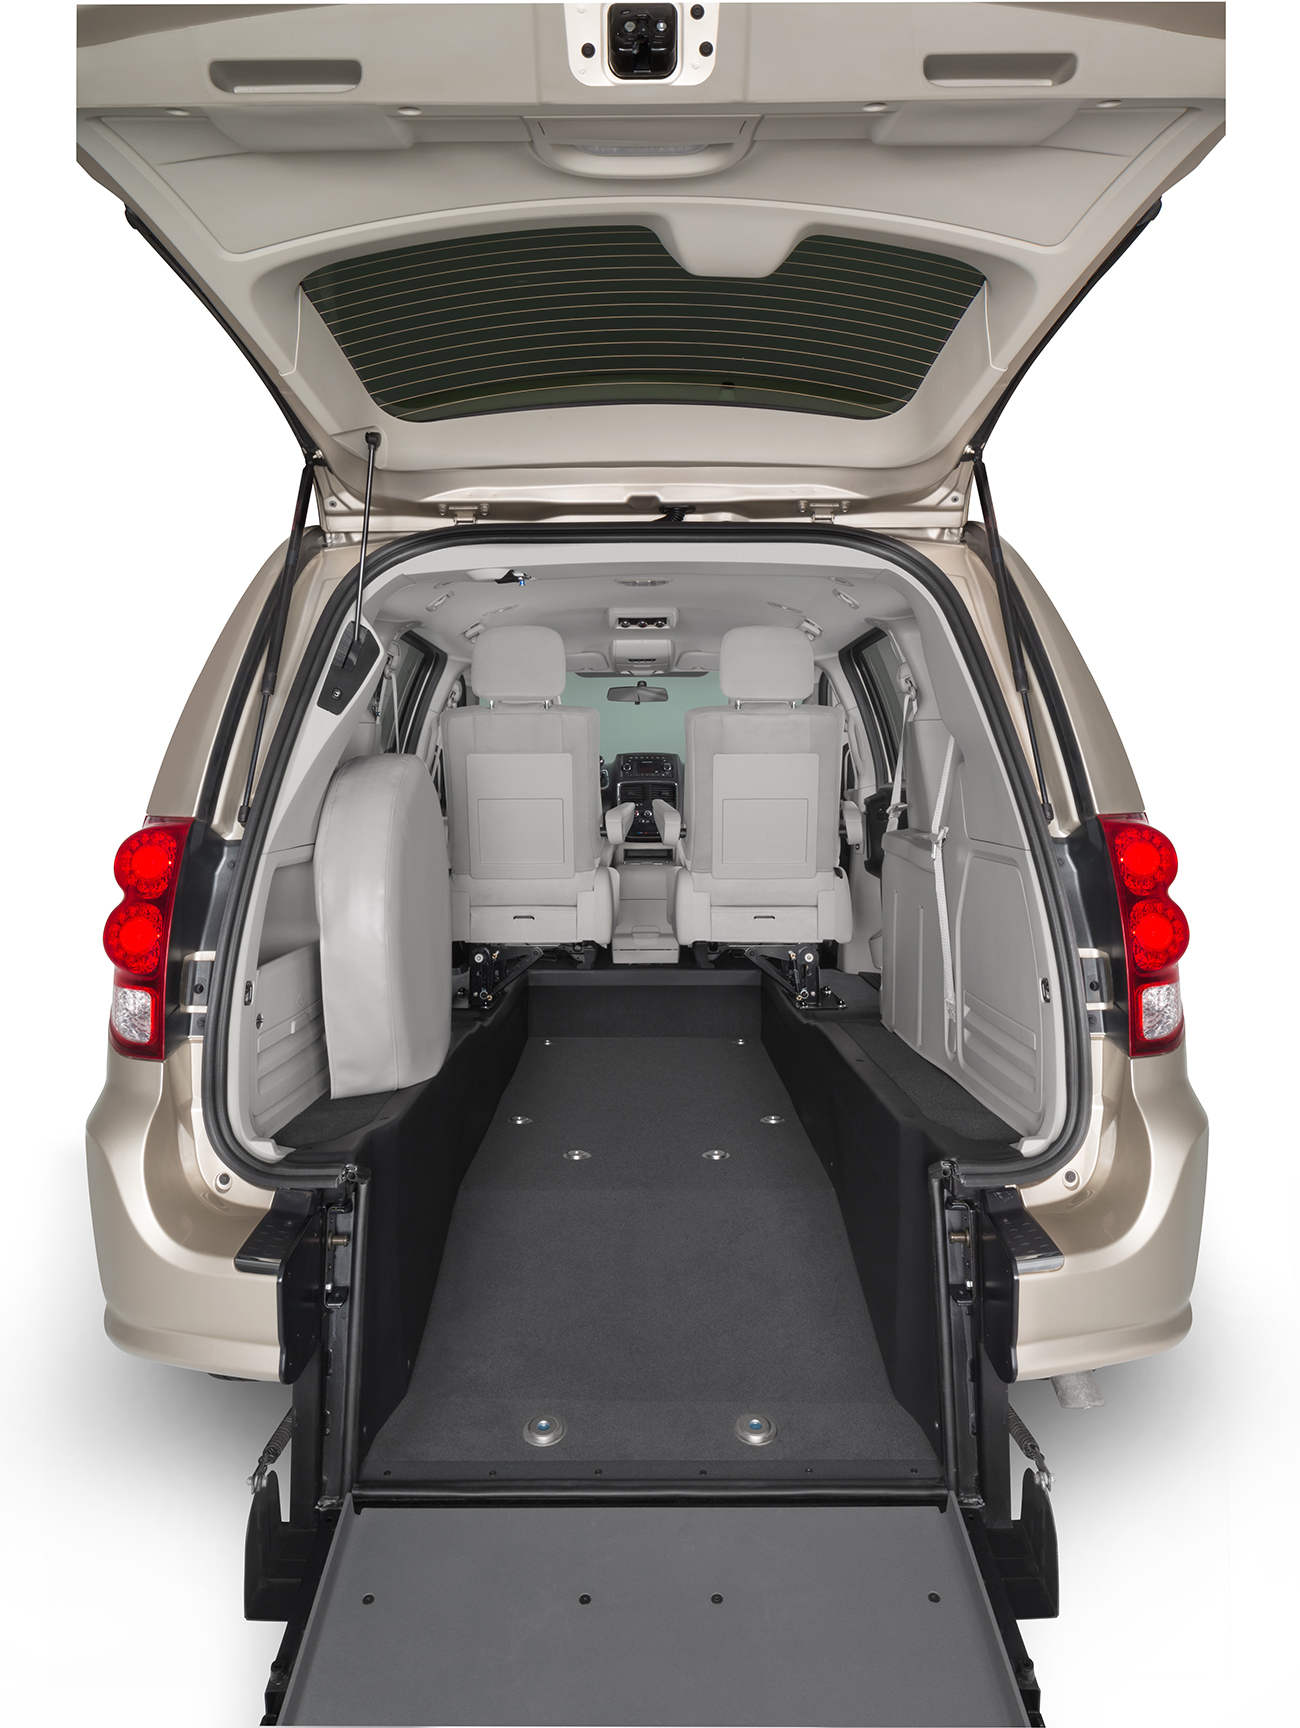 Honda Dealers Nj >> Dodge Chrysler Rear Entry Hatch Rear View | Drive Master ...